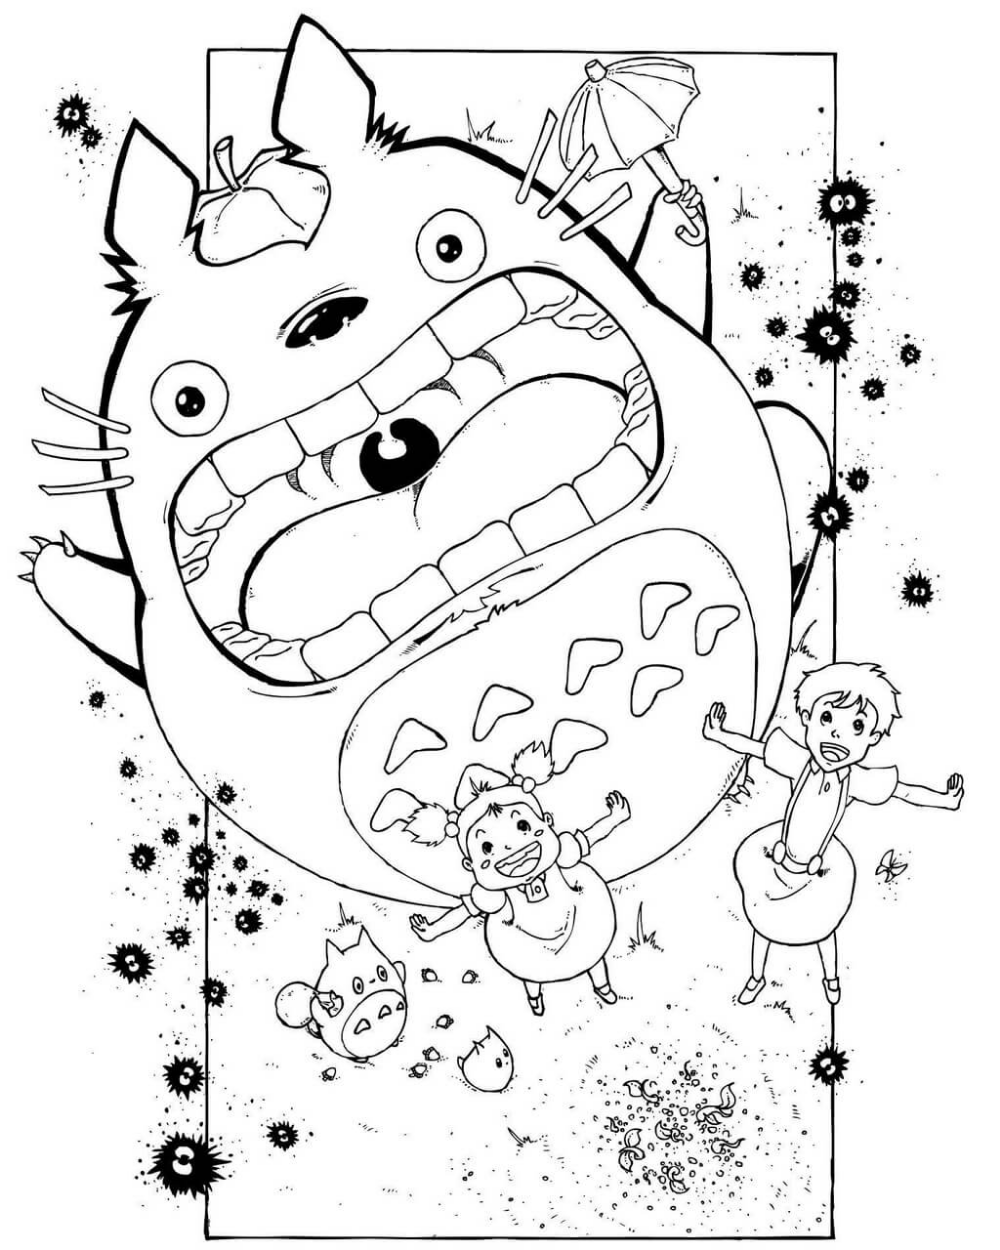 The 10 Best Colouring Pages For Kids For Long Days At Home Paul Paula In 2020 Coloring Pictures Coloring Books Colouring Pages